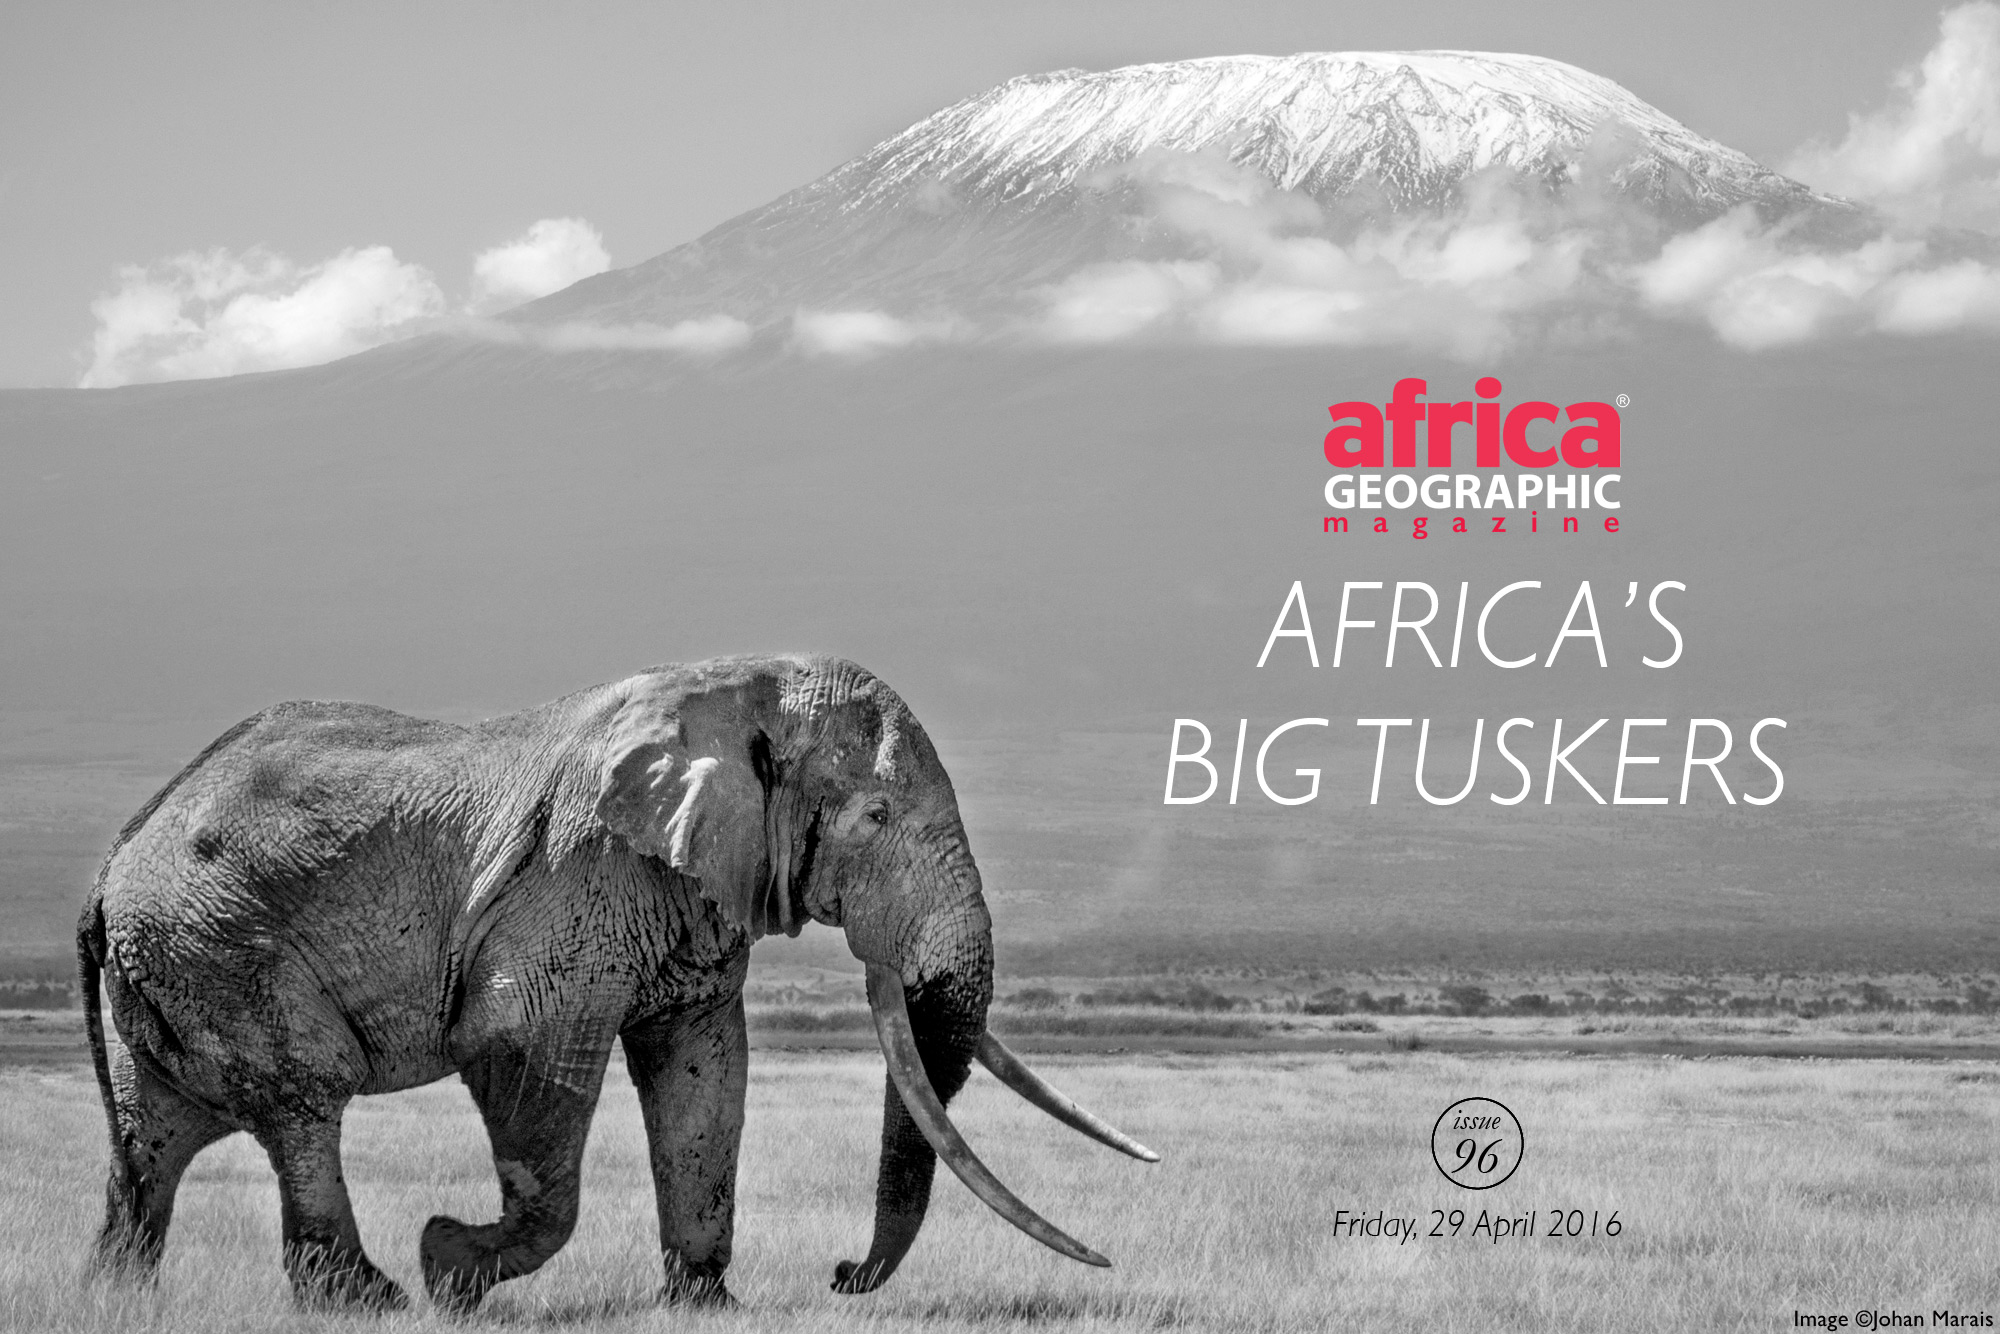 africas-big-tuskers-cover-johan-marais copy